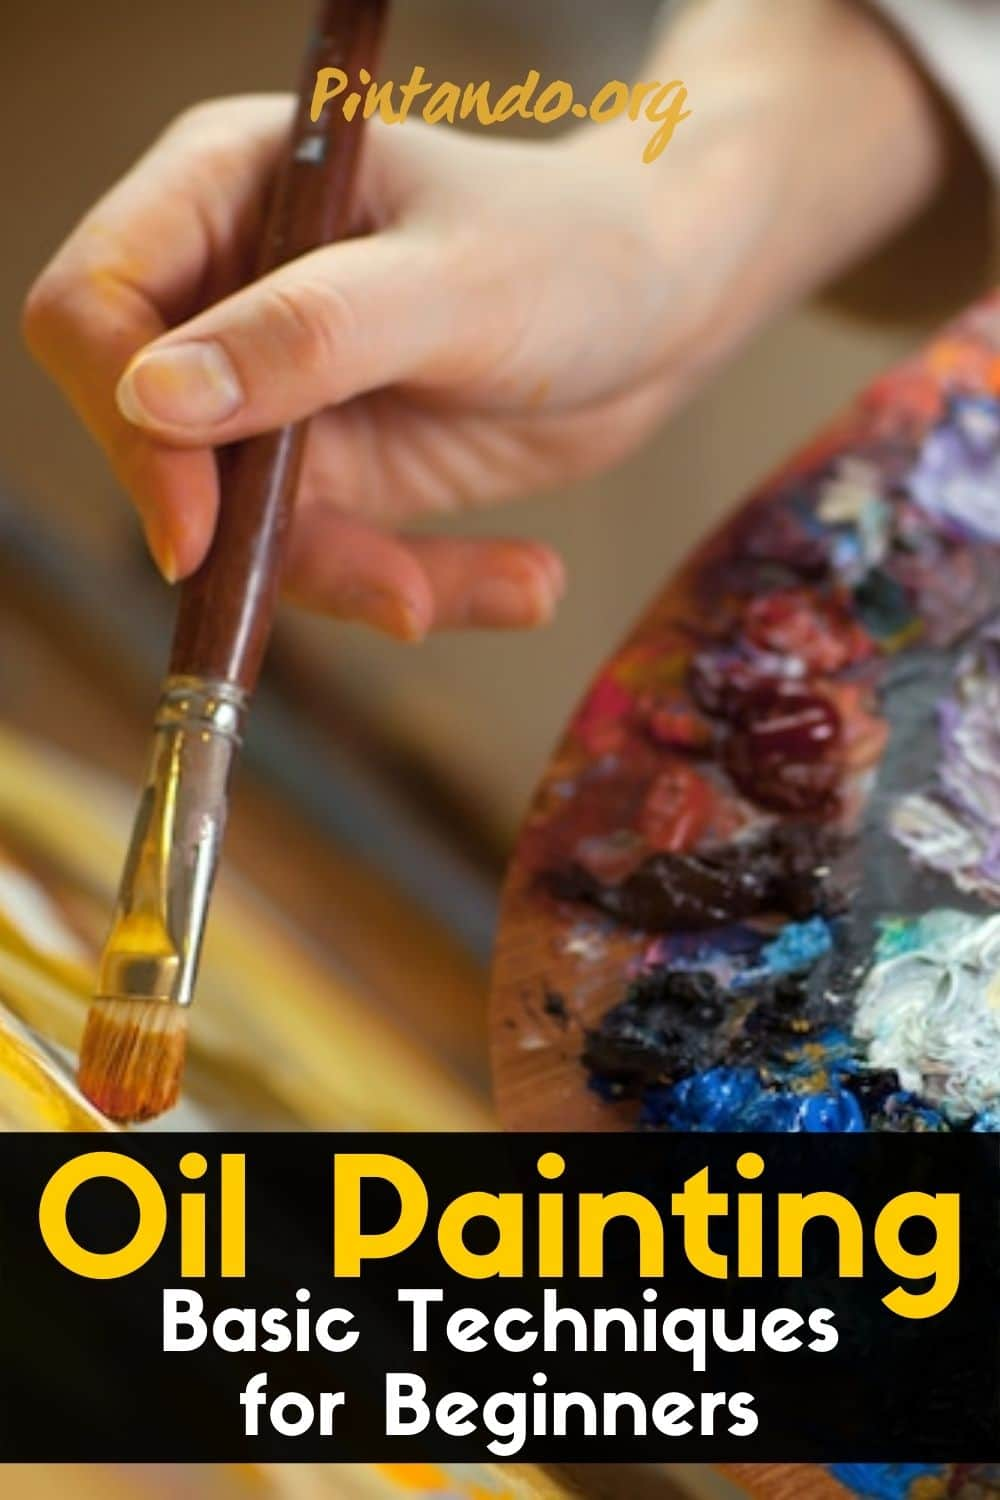 Oil Painting for Beginners - Basic Techniques + Step by Step Demonstratio-min